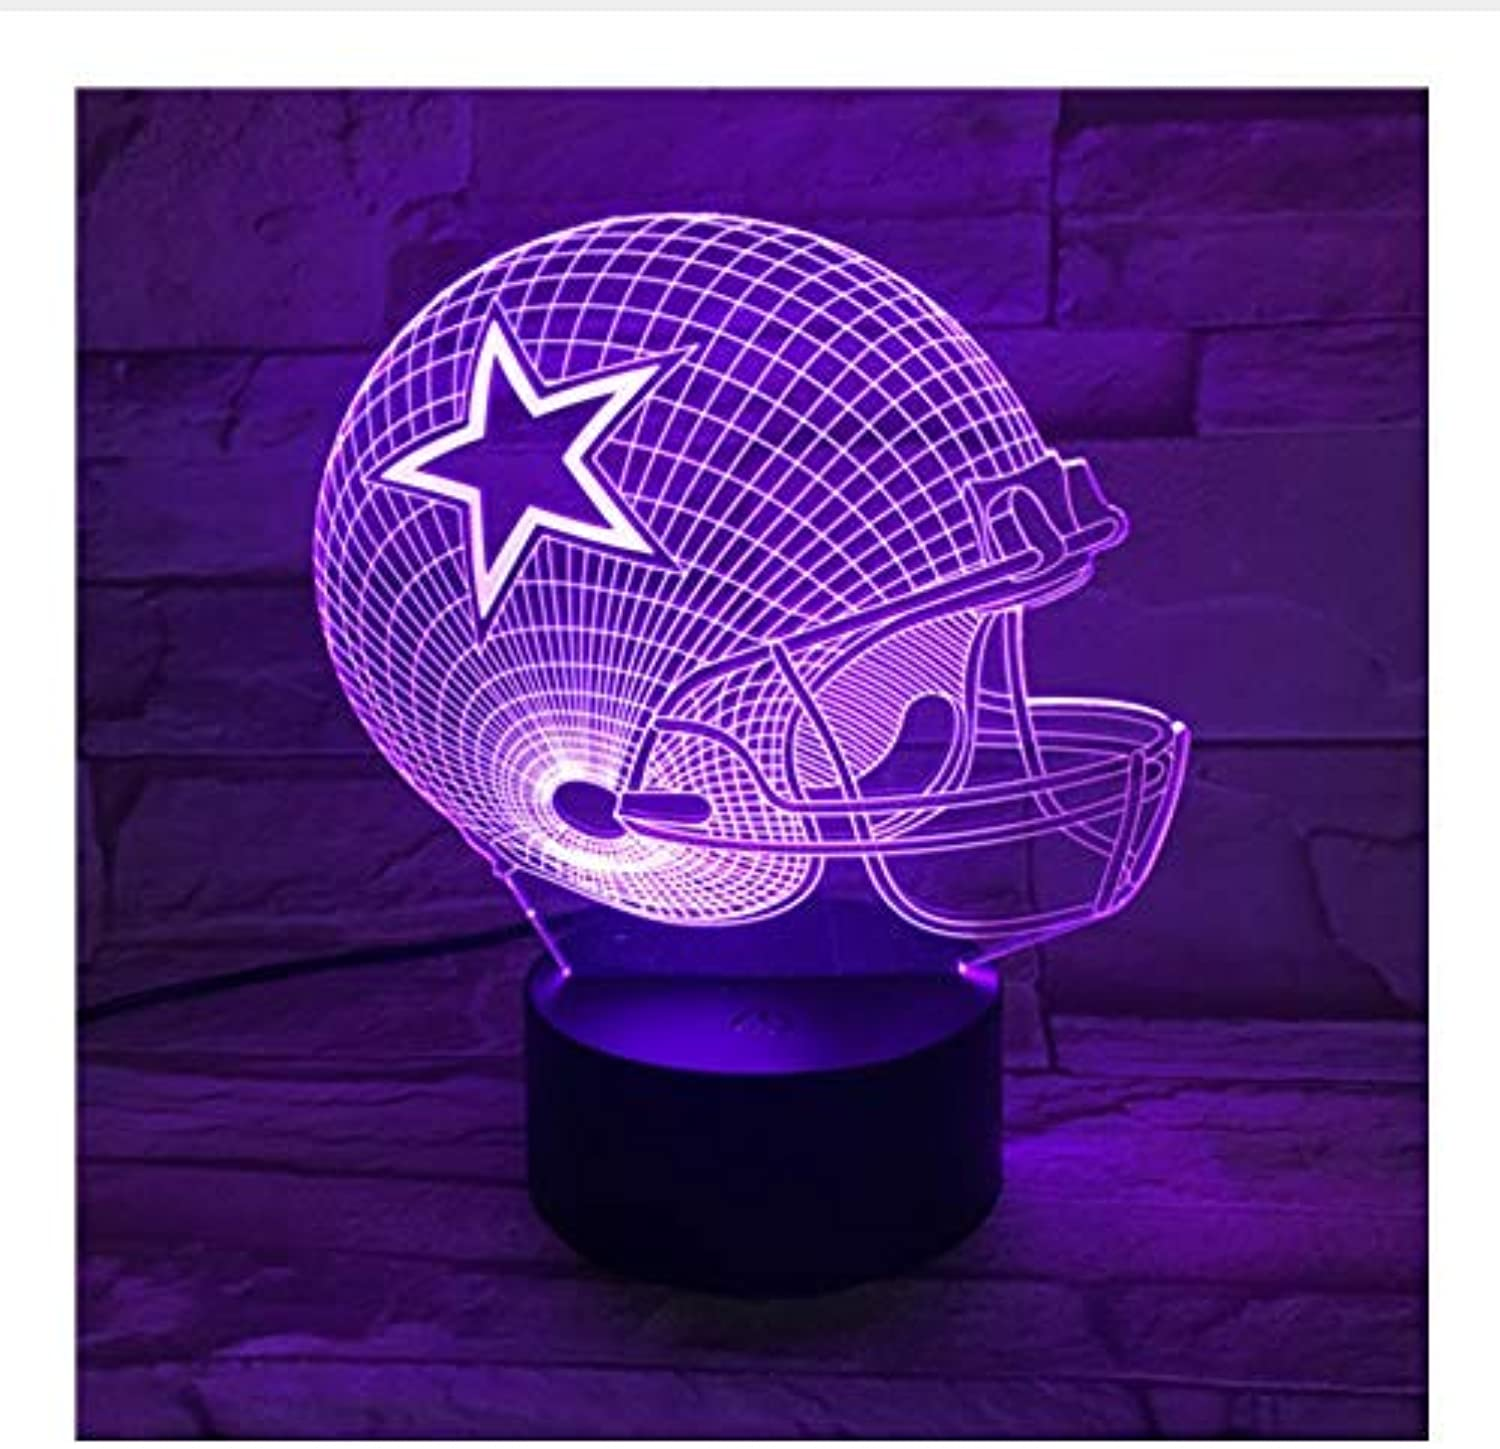 BMY Cowboys Helme3D Led Lamp 7 colors Change Acrylic USB Led Table Lamp Kids Gift Creative Night Lamp